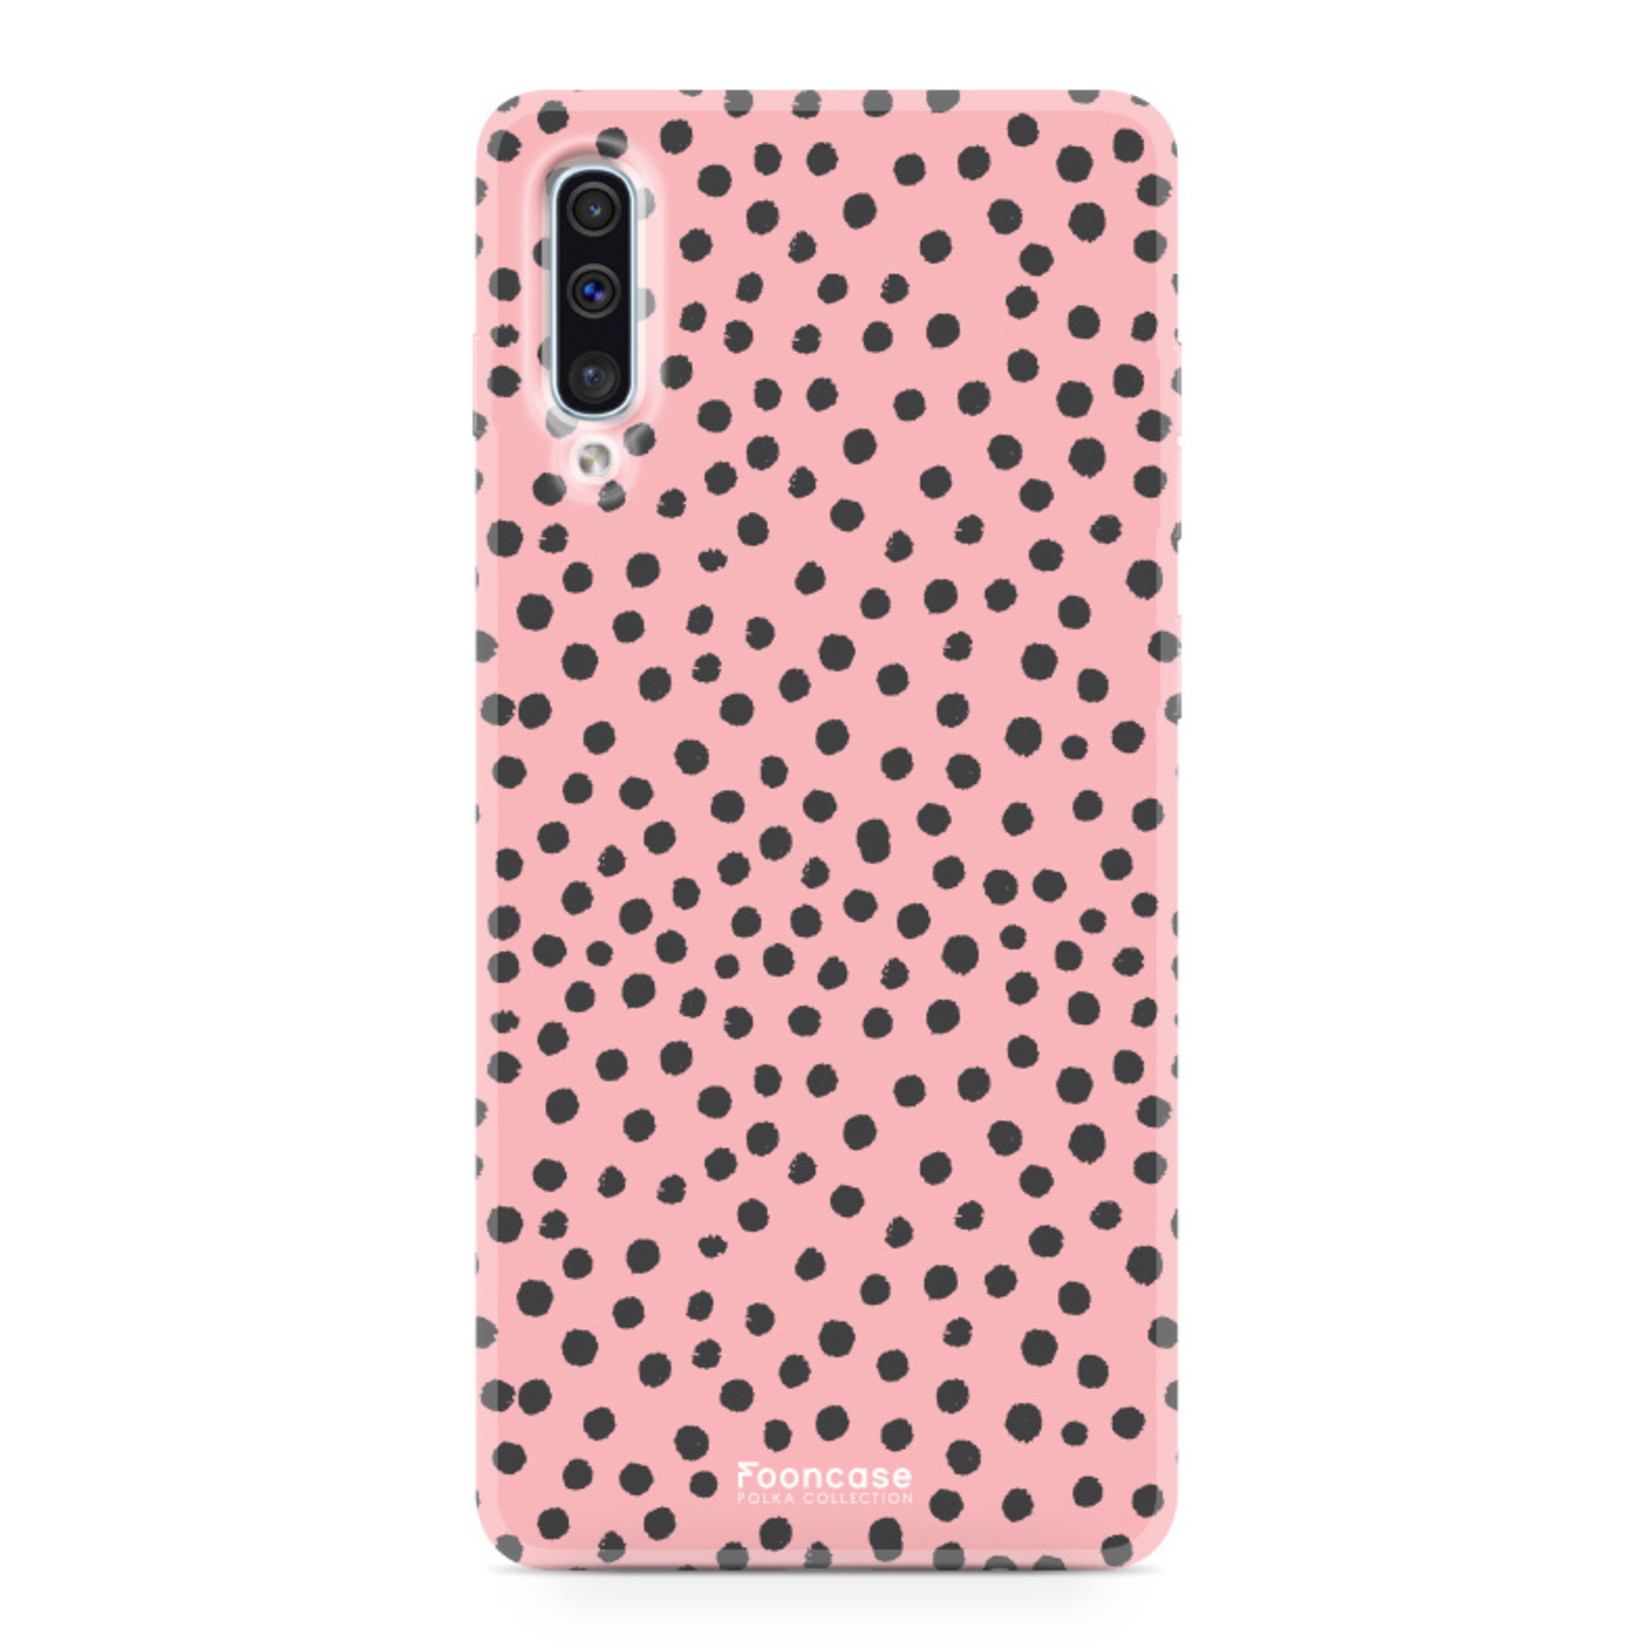 FOONCASE Samsung Galaxy A50 hoesje TPU Soft Case - Back Cover - POLKA COLLECTION / Stipjes / Stippen / Roze